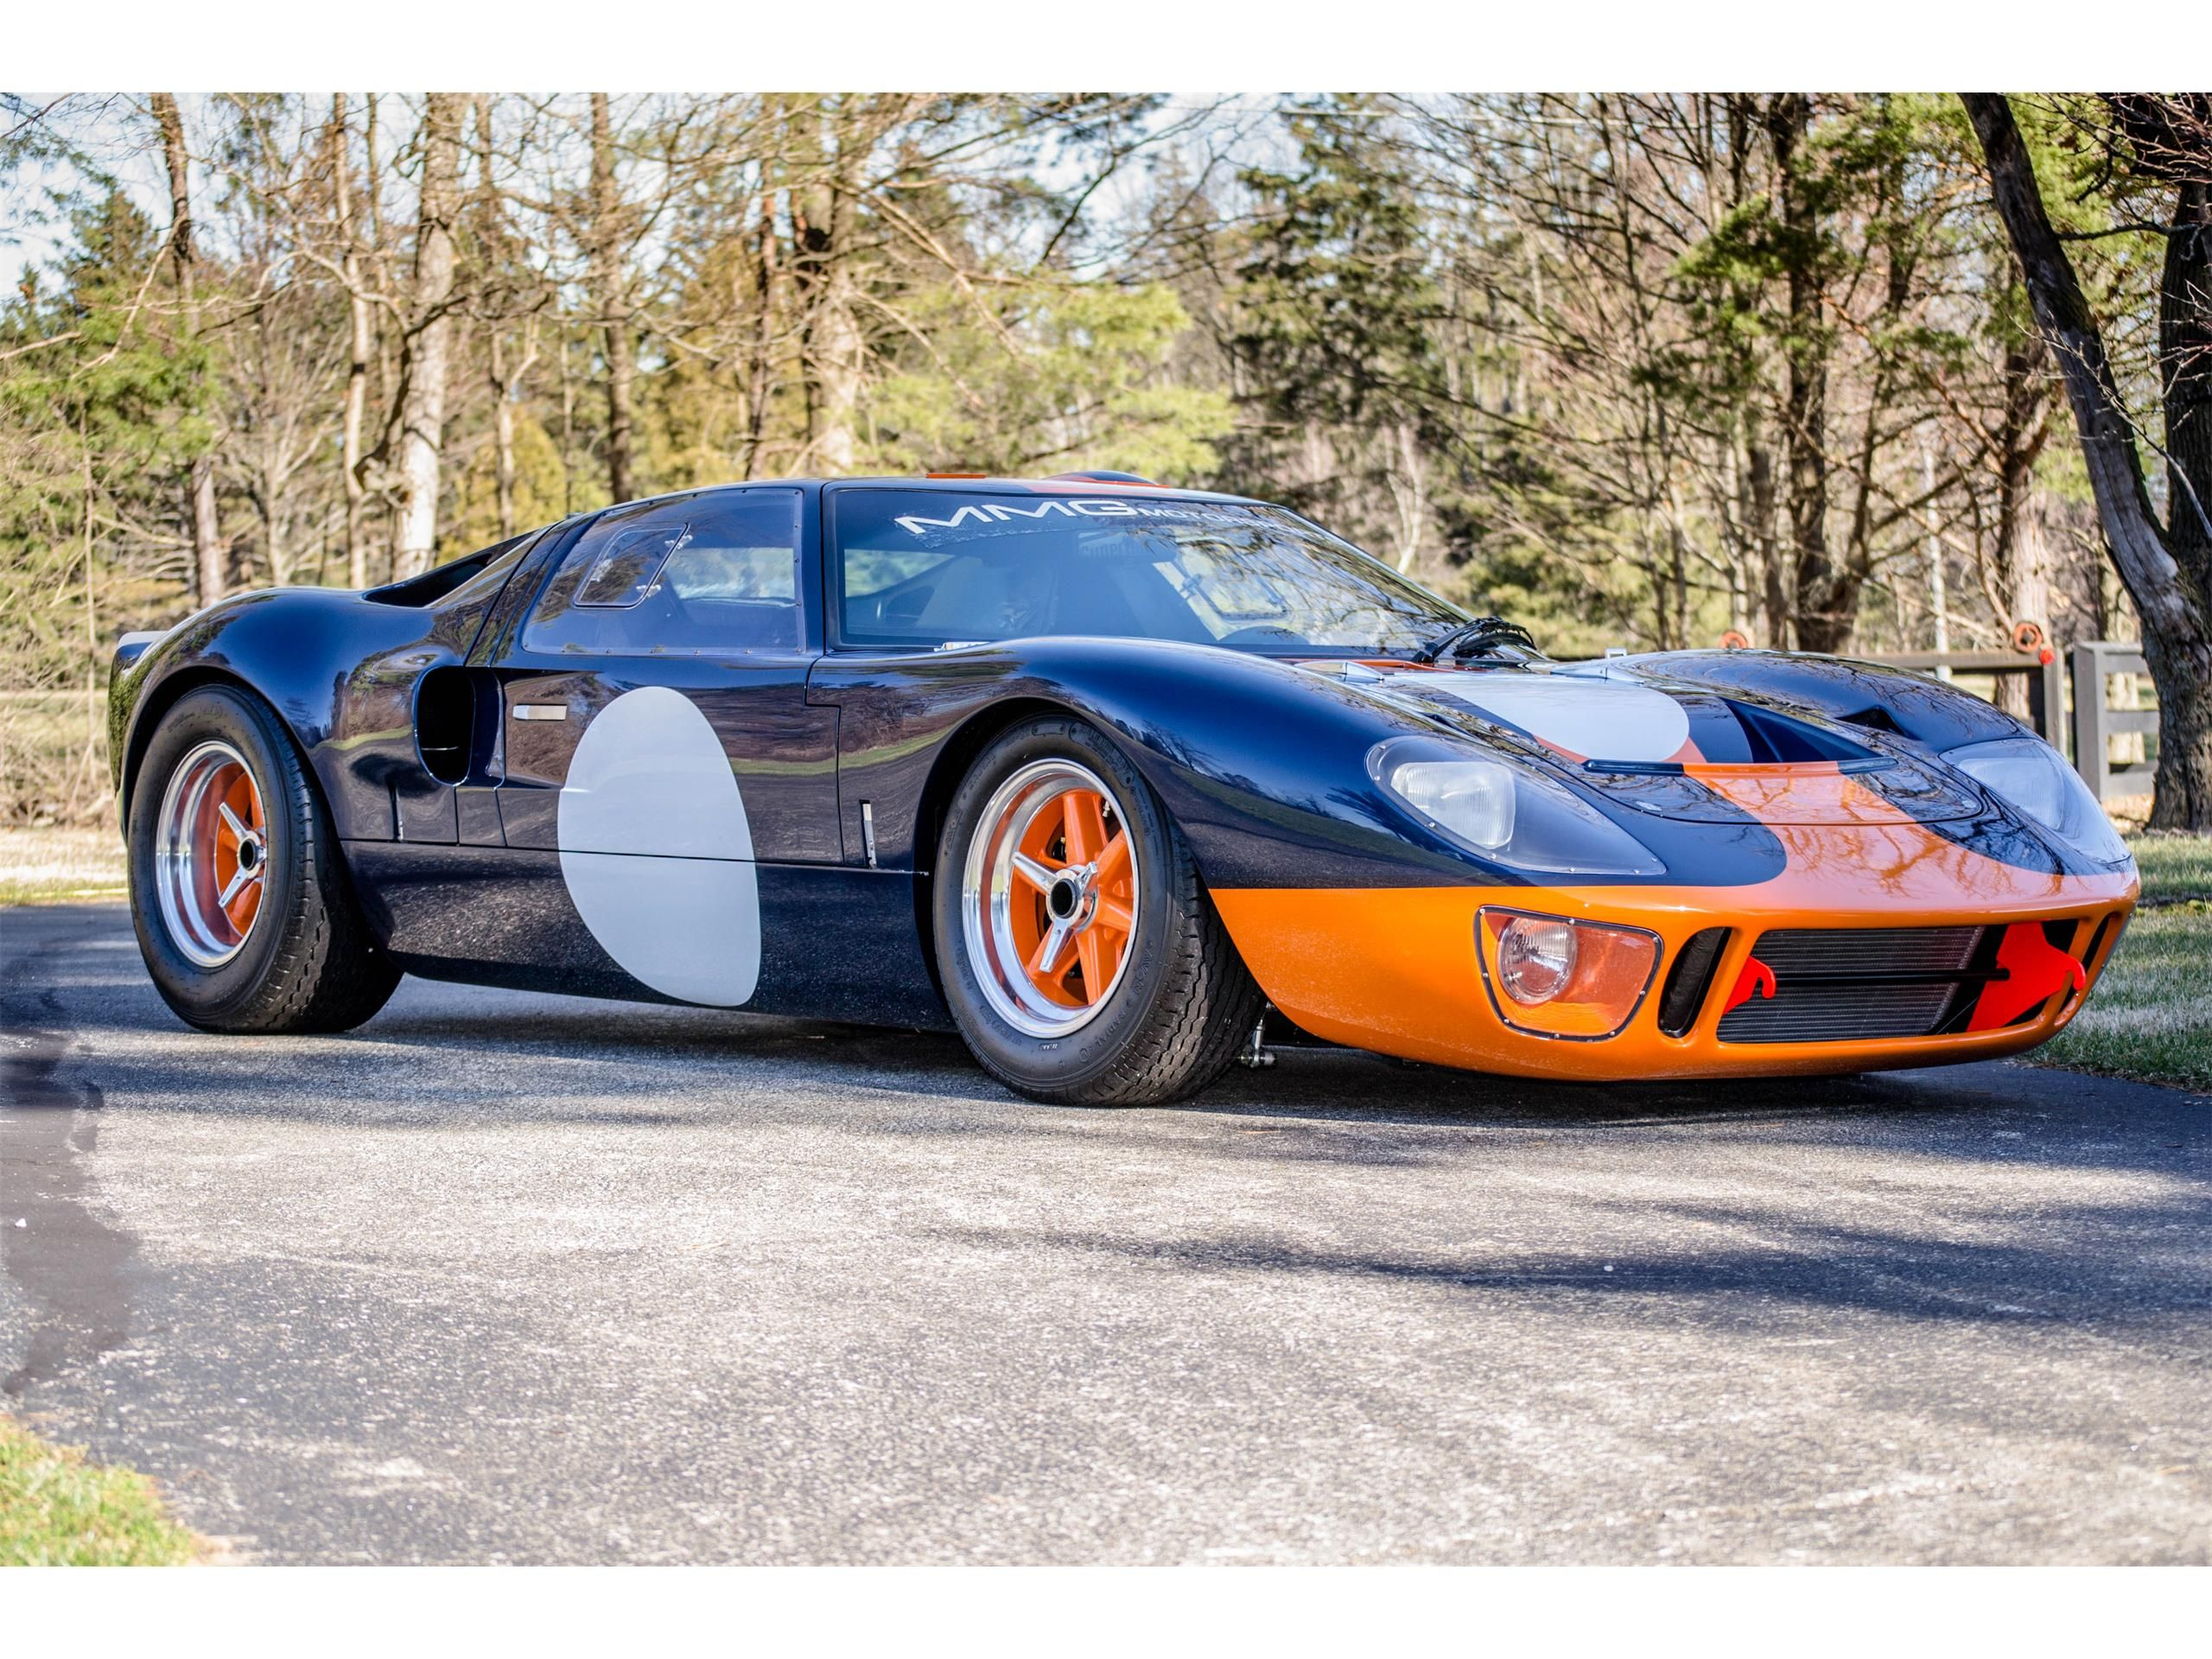 1966 Superformance Gt40 Located In Ohio Offered By Mansfield Motor Group For Sale Listing Id Cc 990577 Clas Ford Mustang Cobra Classic Cars Trucks Ford Gt